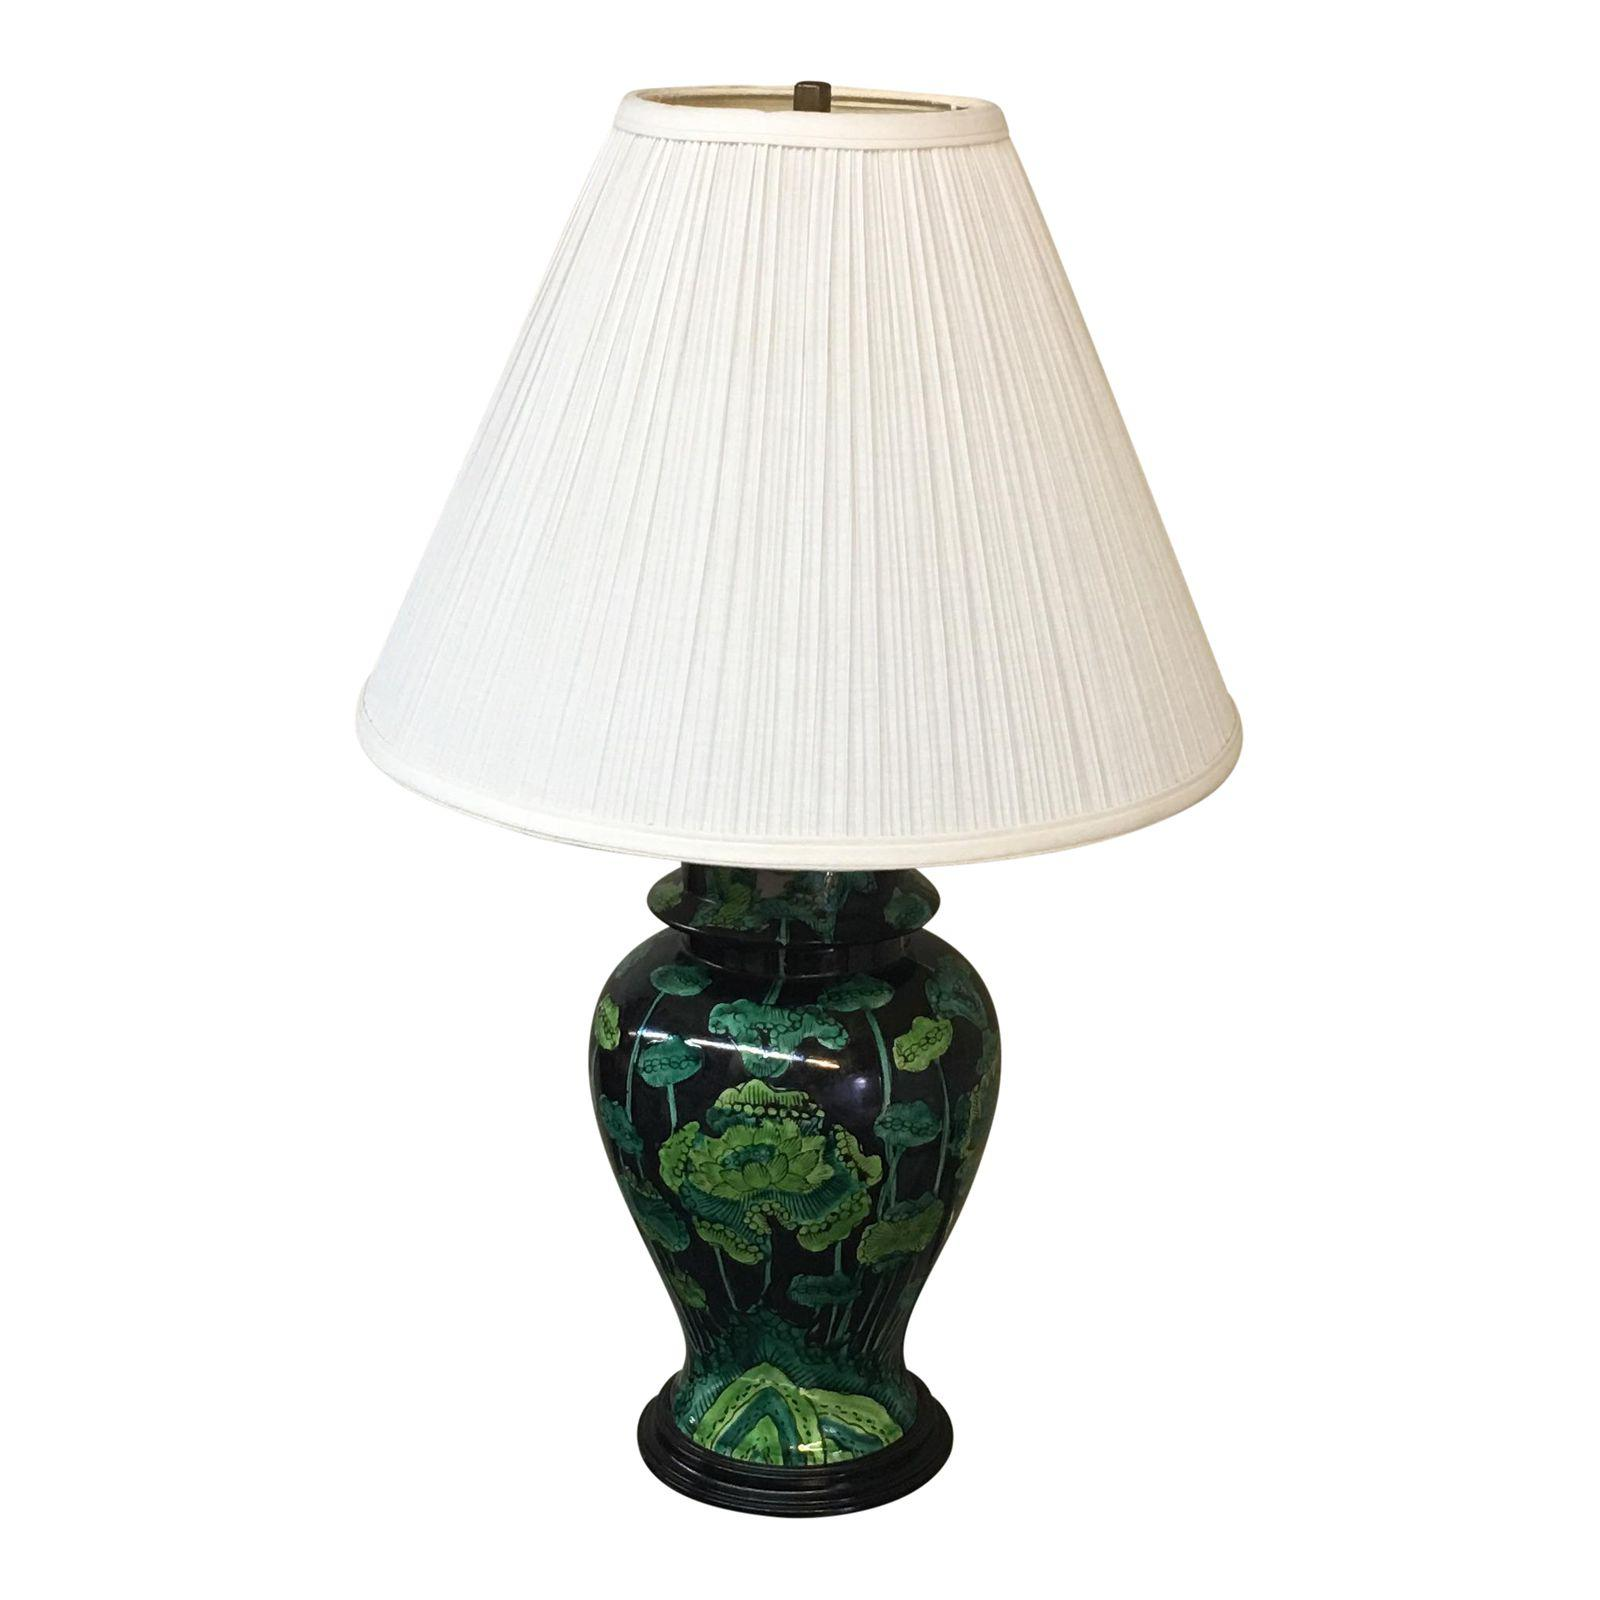 Hand Painted Ginger Jar Table Lamp Black Green Design Plus Gallery